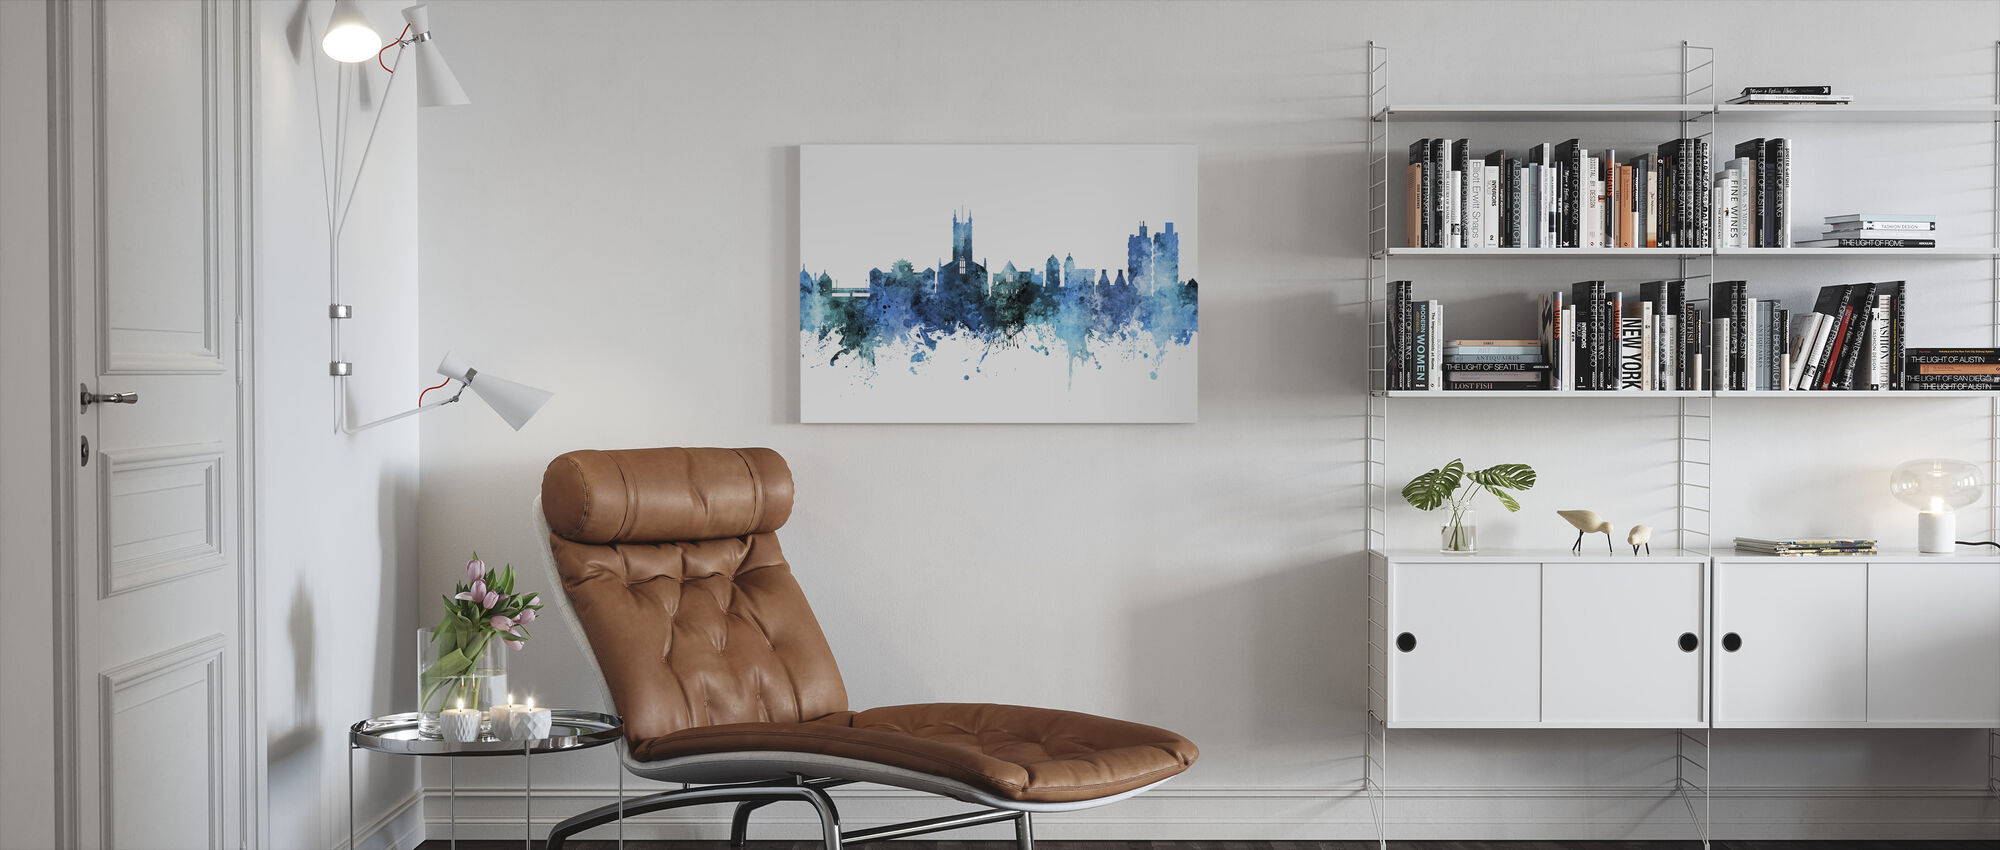 Stoke-on-Trent England Skyline - Canvas print - Living Room